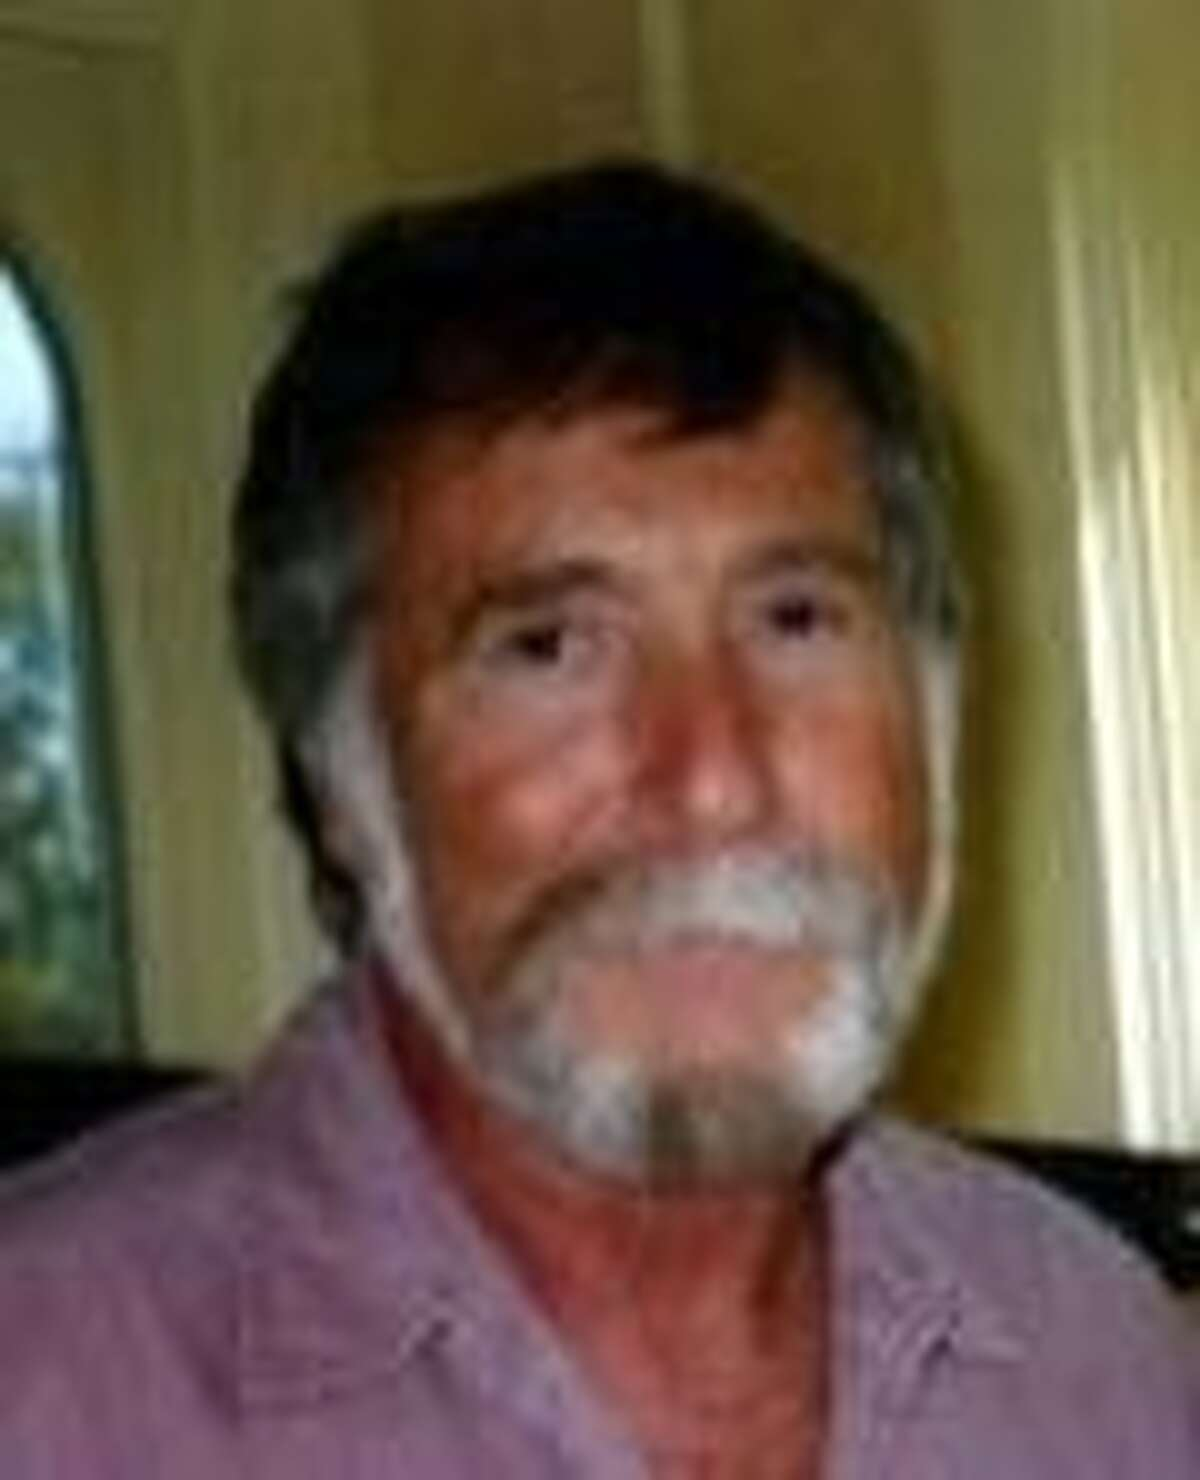 Albert Senzatimore, who died of carbon monoxide poisoning in October 2013 in his friend's cabin in Truckee. A contractor has been charged with felony manslaughter for allegedly botching a repair job that caused a furnace to fill the cabin with carbon monoxide.